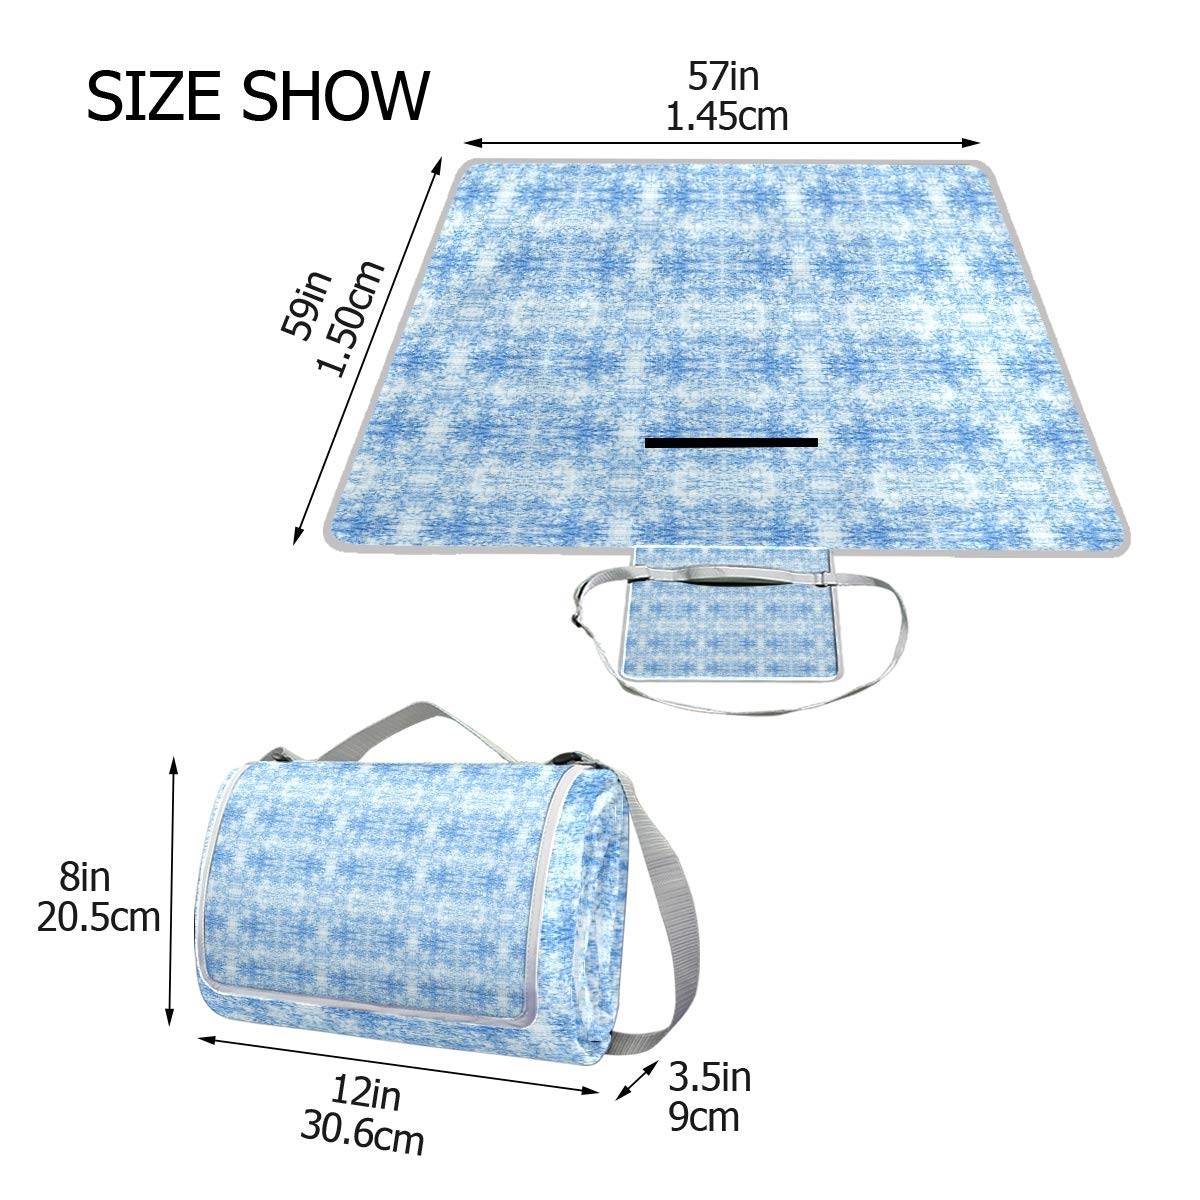 LOIGEIDQ Picnic mat Rchambray Light Waterproof Outdoor Picnic Blanket, Sandproof and Waterproof Picnic Blanket Tote for Camping Hiking Grass Travelling DualLayers by LOIGEIDQ (Image #5)